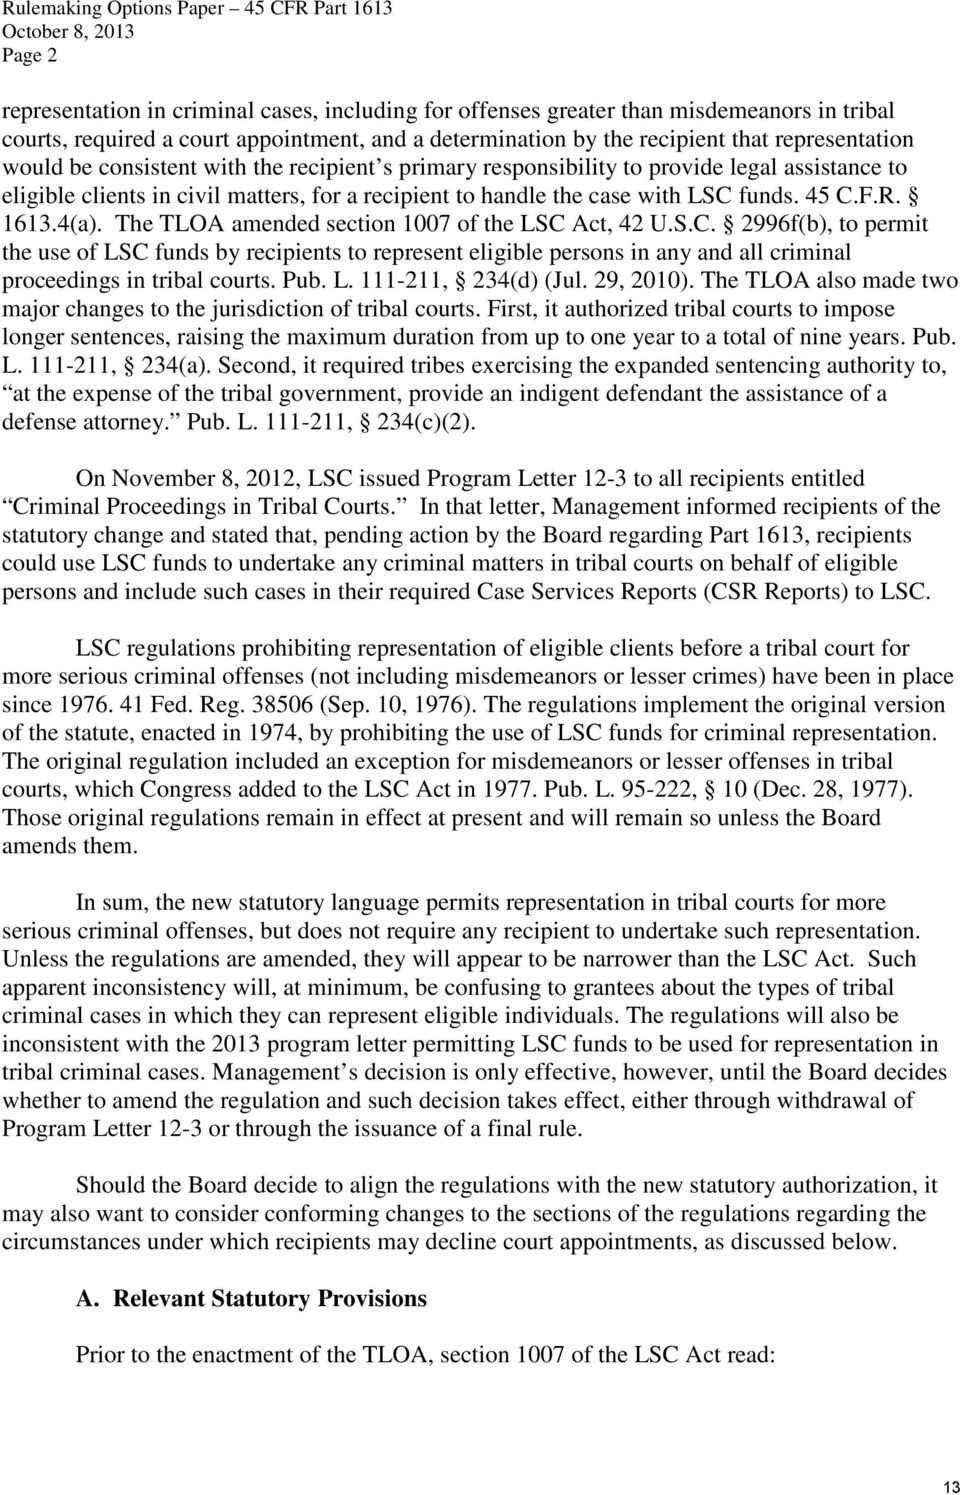 to handle the case with LSC funds. 45 C.F.R. 1613.4(a). The TLOA amended section 1007 of the LSC Act, 42 U.S.C. 2996f(b), to permit the use of LSC funds by recipients to represent eligible persons in any and all criminal proceedings in tribal courts.